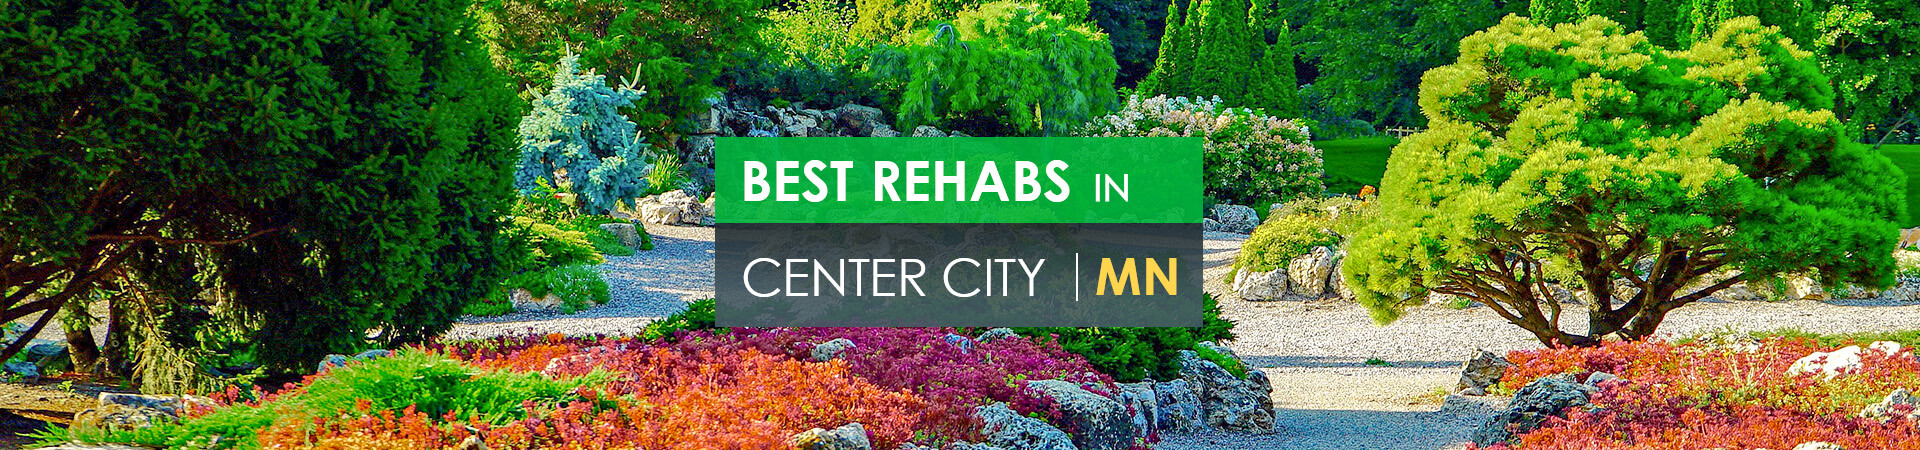 Best rehabs in Center City, MN